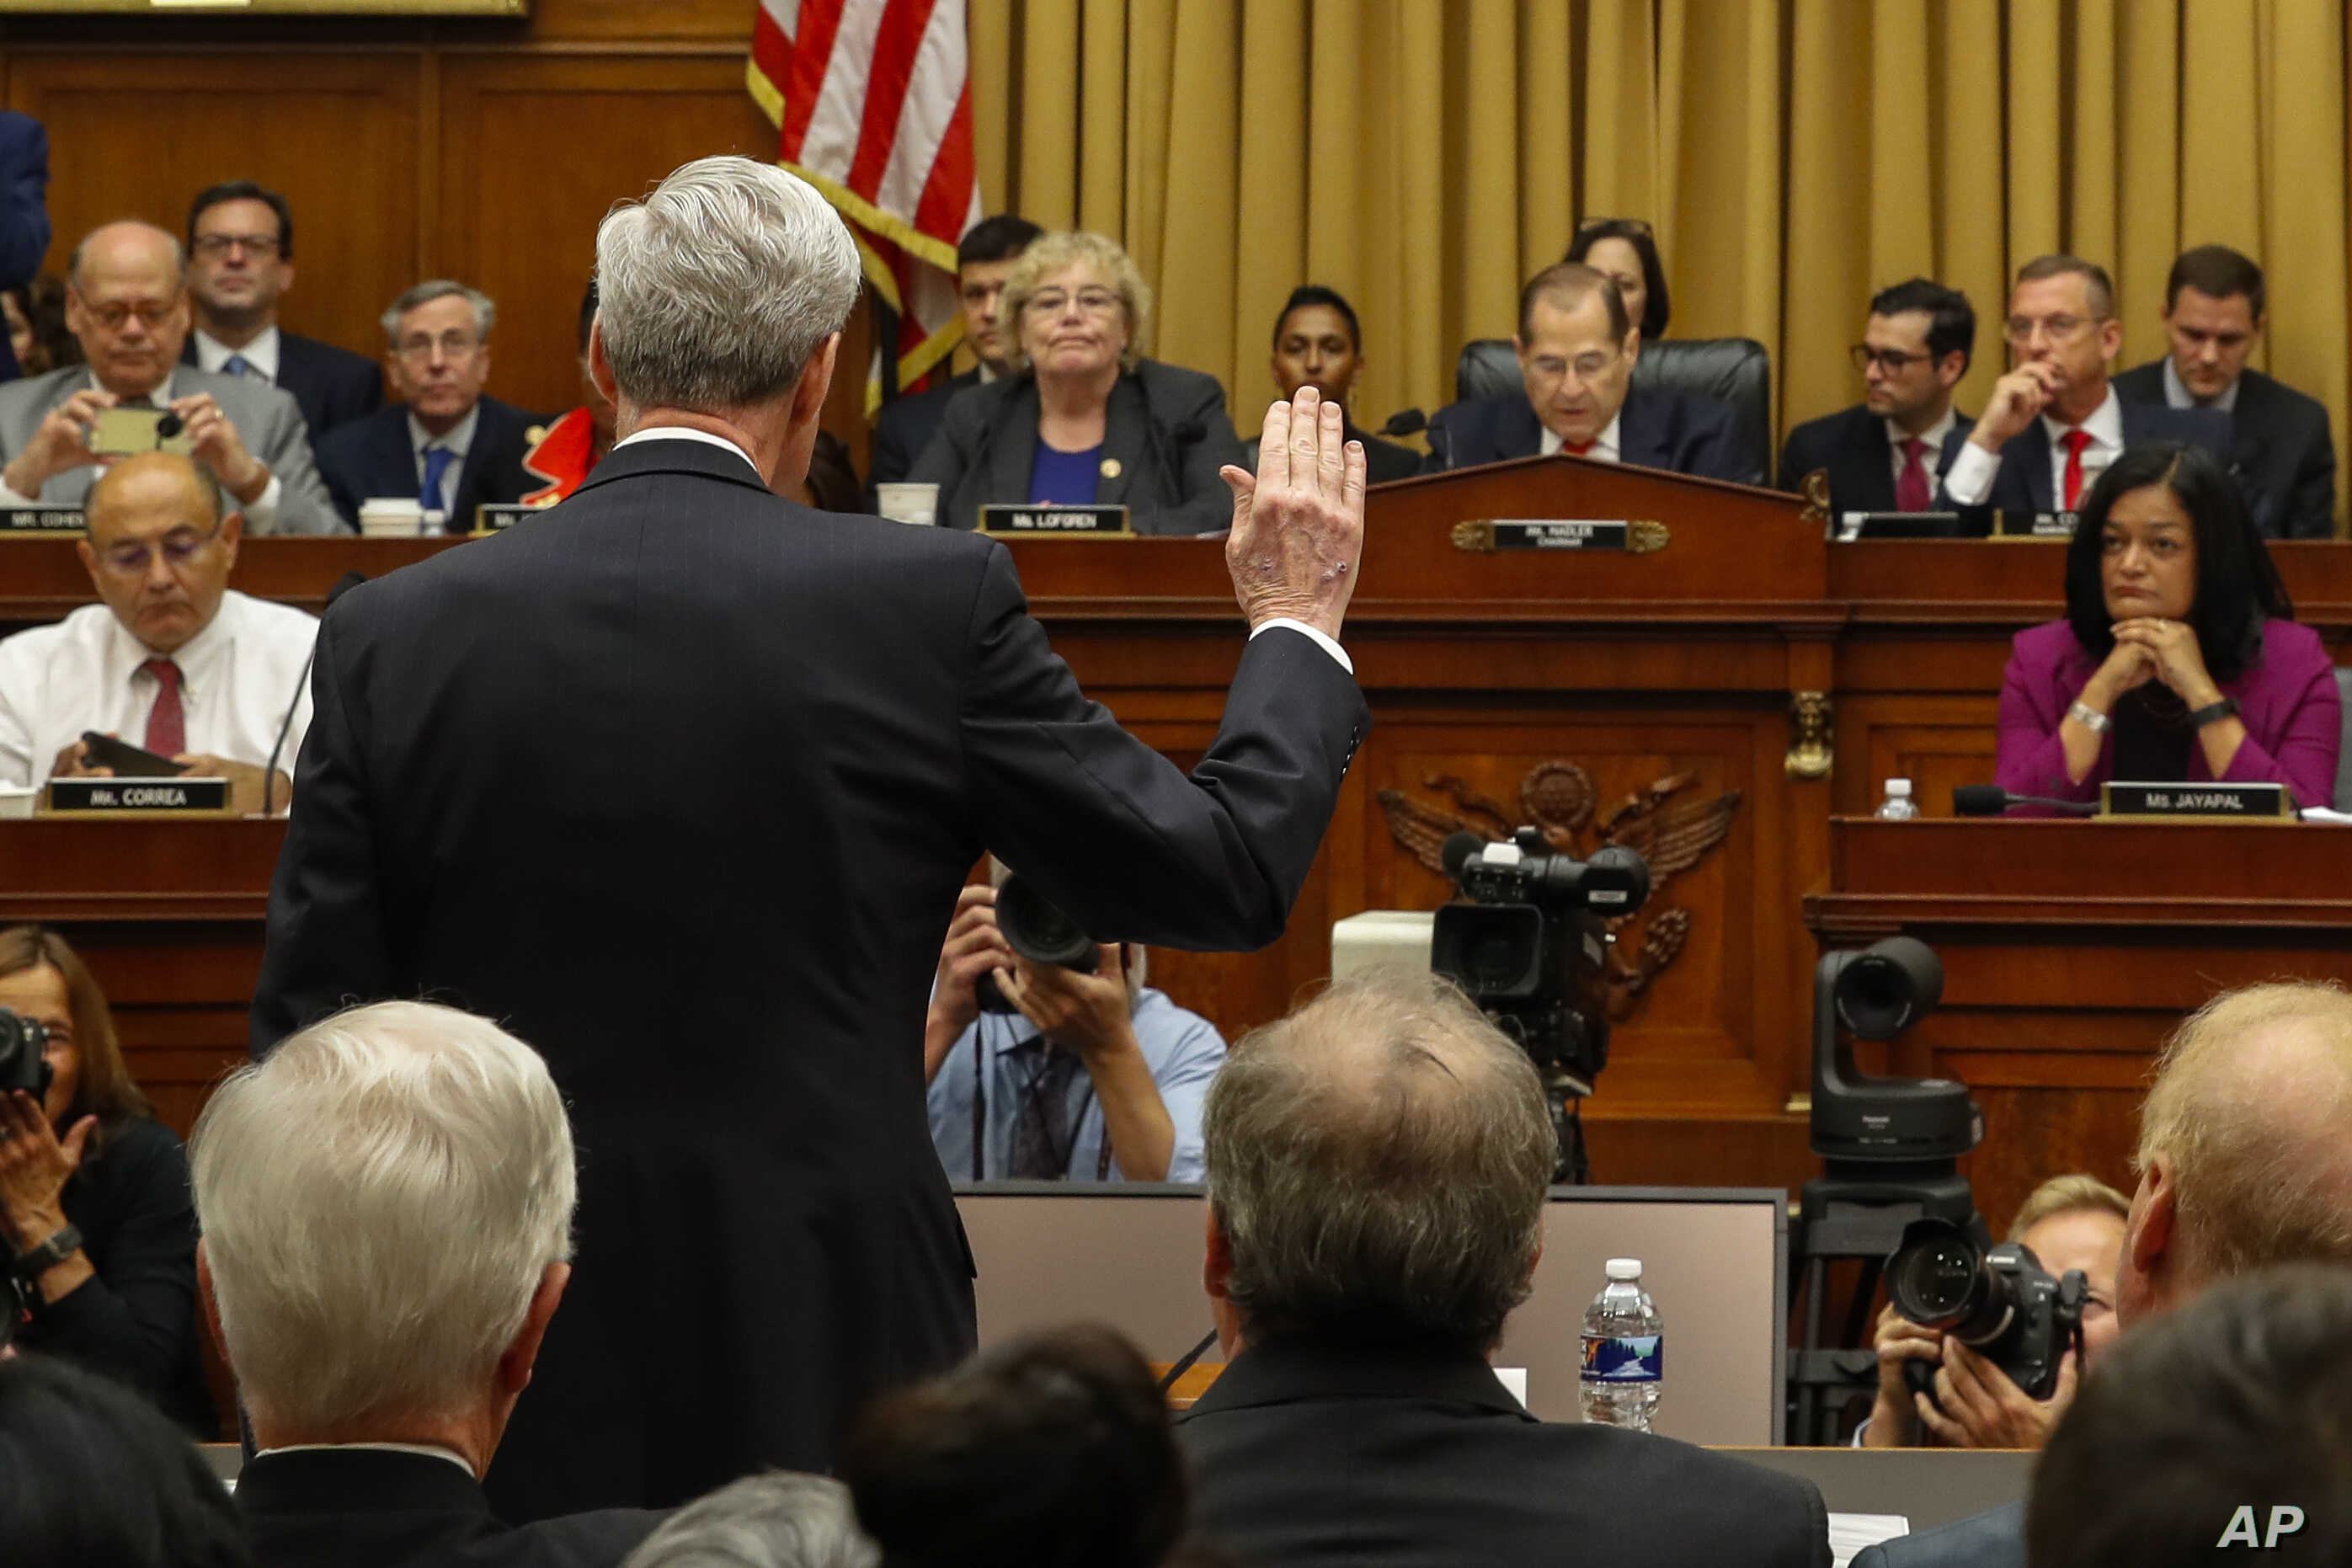 FILE - Former special counsel Robert Mueller is sworn in by House Judiciary Committee Chairman Jerrold Nadler, D-N.Y., to testify before the House Judiciary Committee hearing on his report on Russian election interference, on Capitol Hill, July 24, 2019.